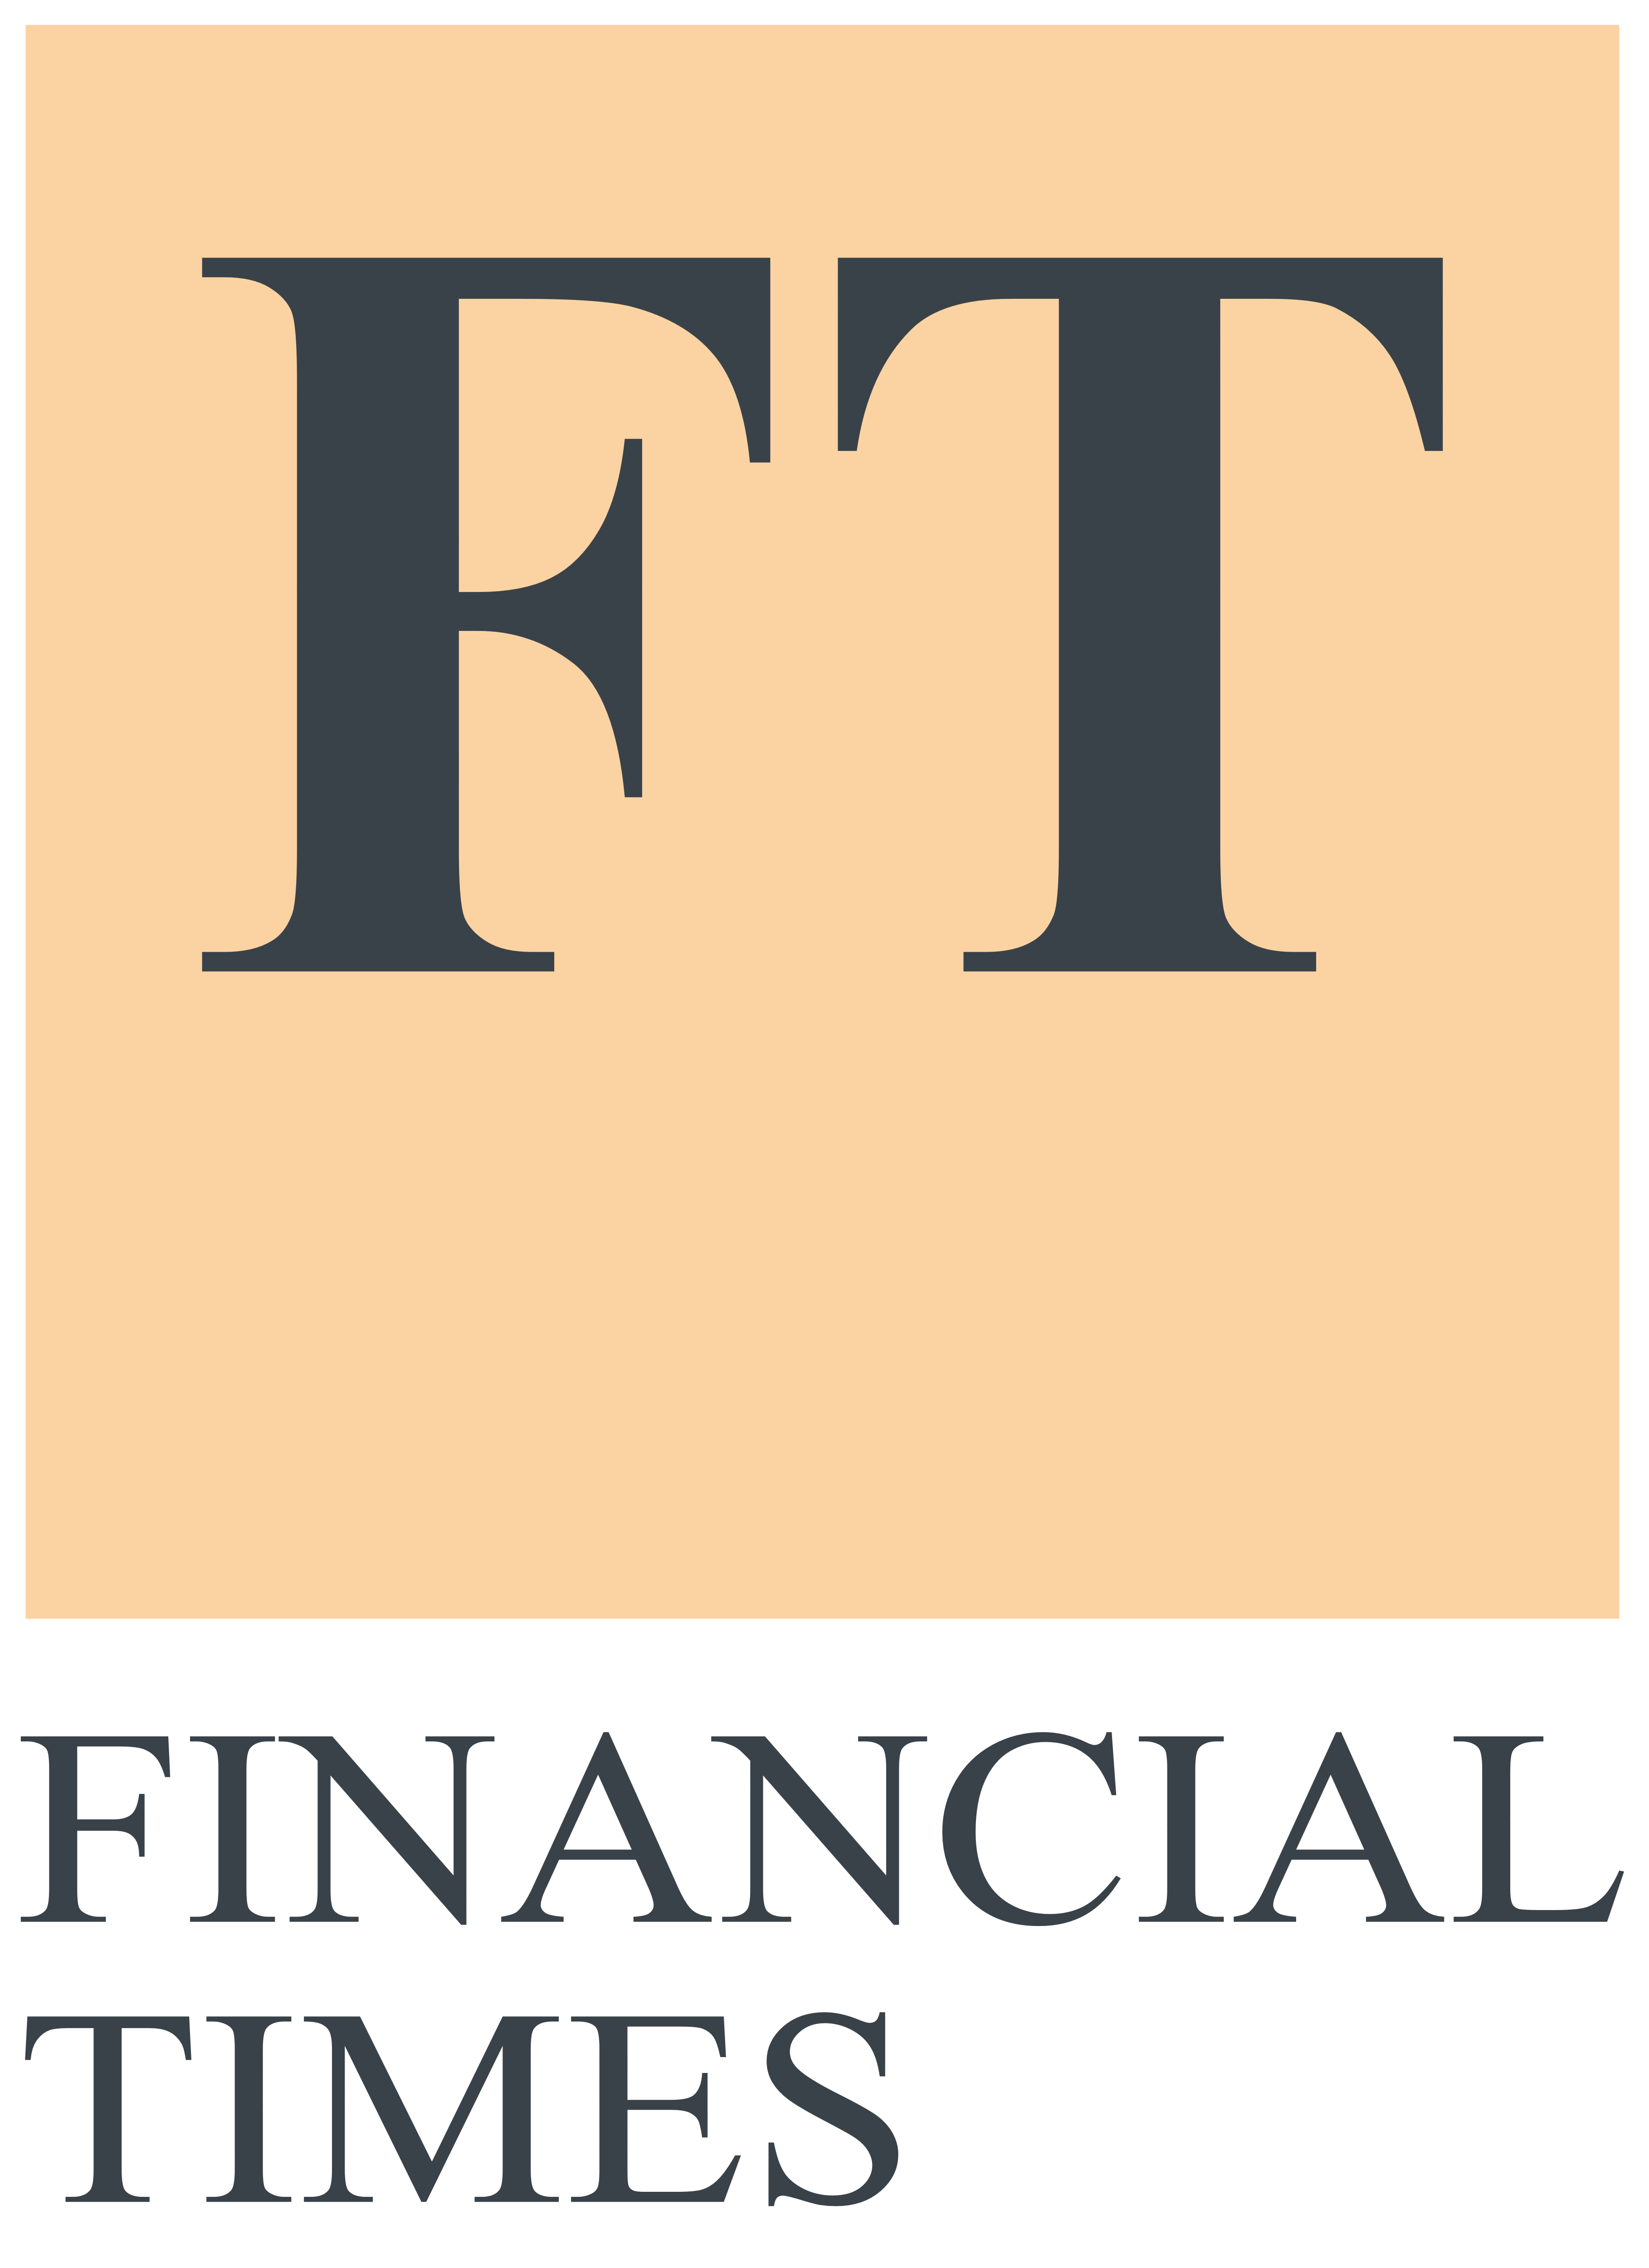 FT, The Financial Times.